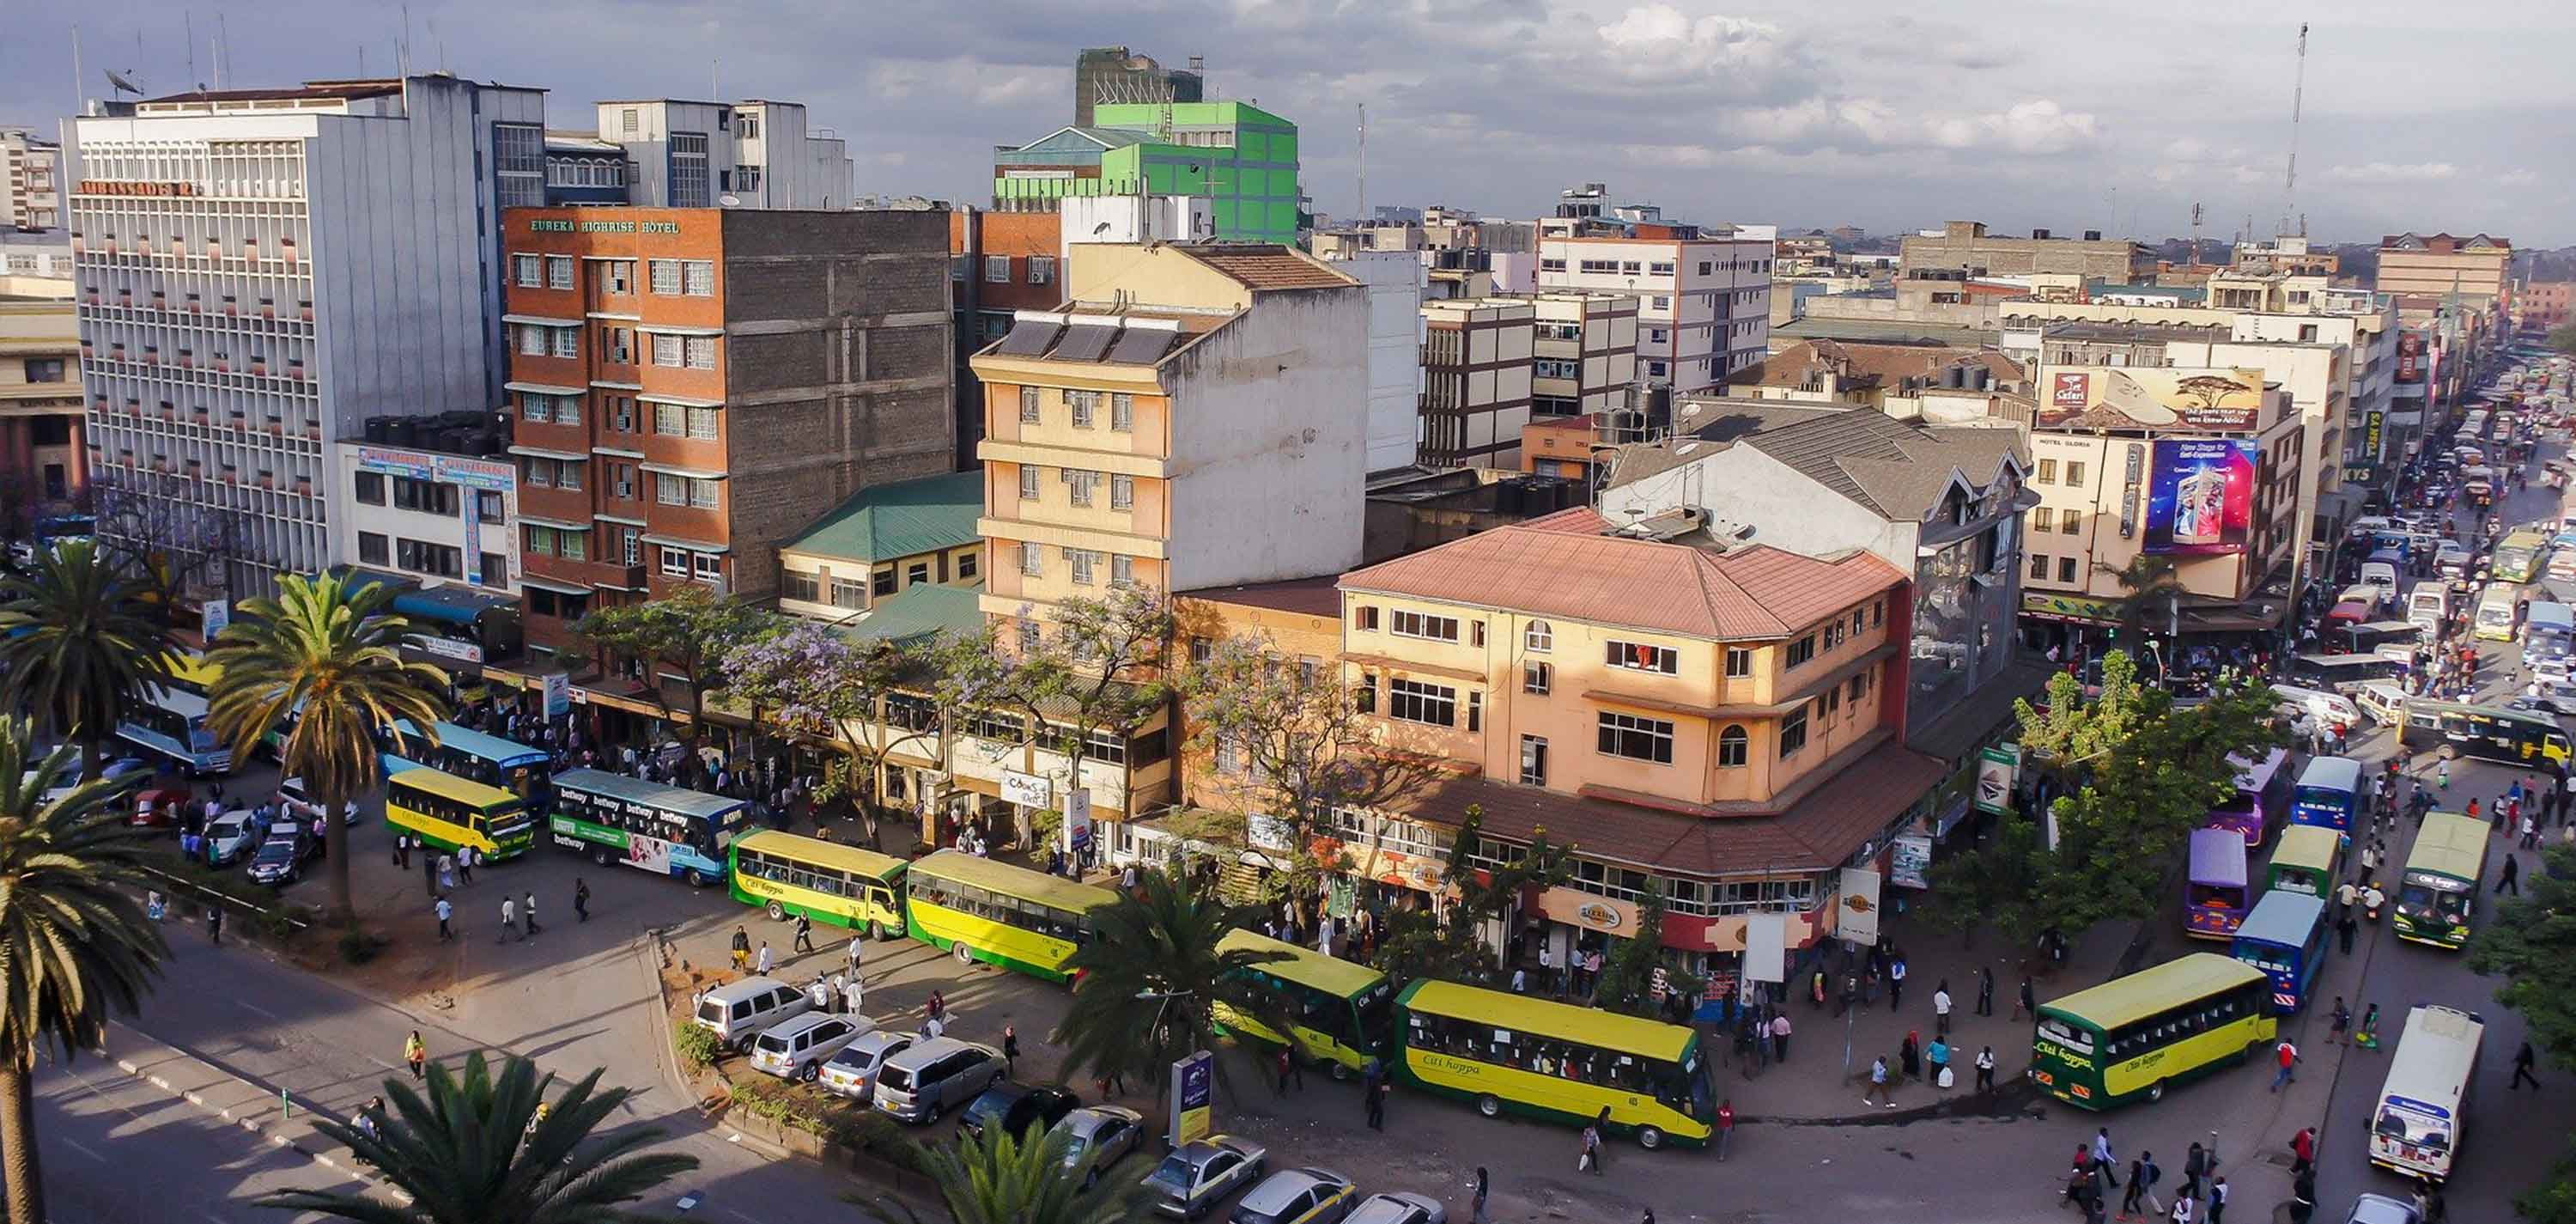 Areal view of a busy street in Nairobi.